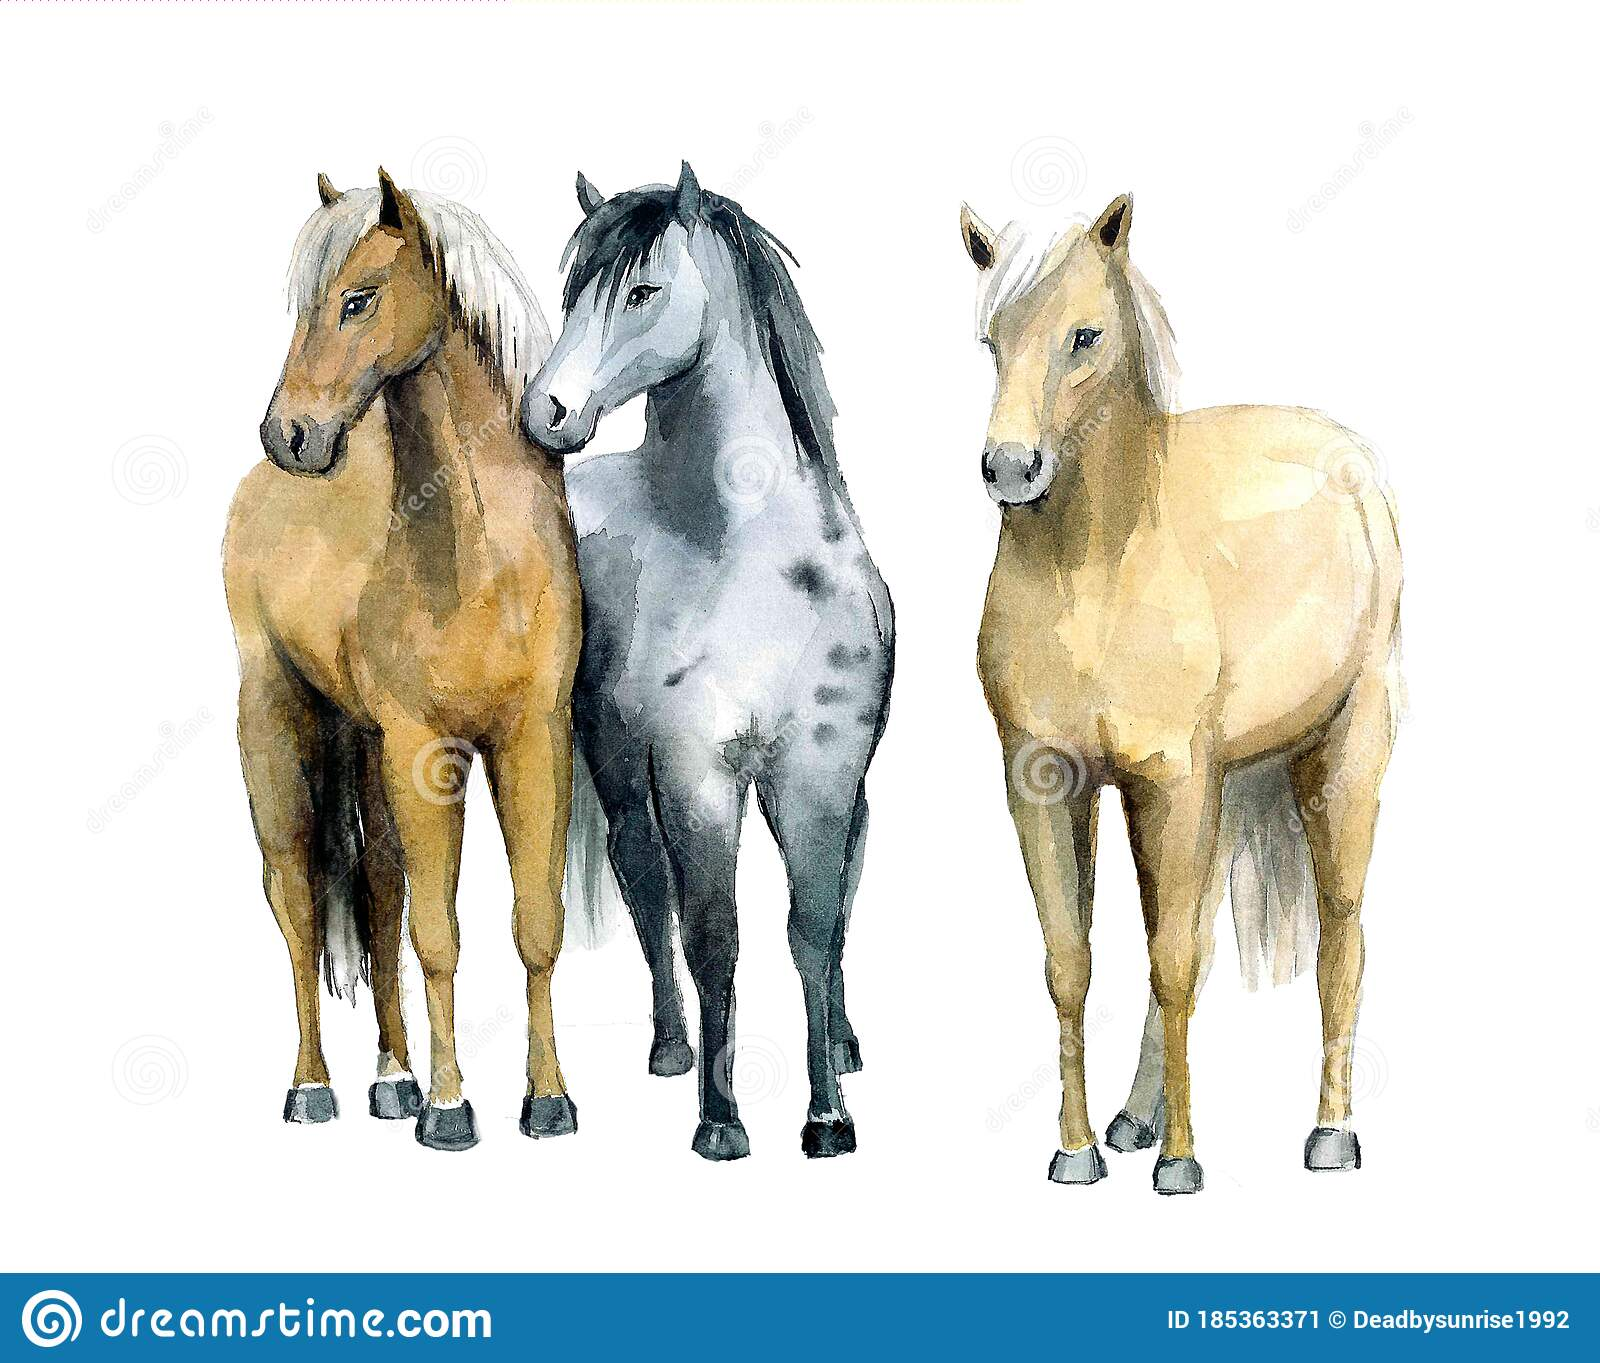 Beautiful Watercolor Horses On The White Background Animal Watercolor Silhouette Sketch Hand Draw Art Illustration Stock Illustration Illustration Of Brown Design 185363371